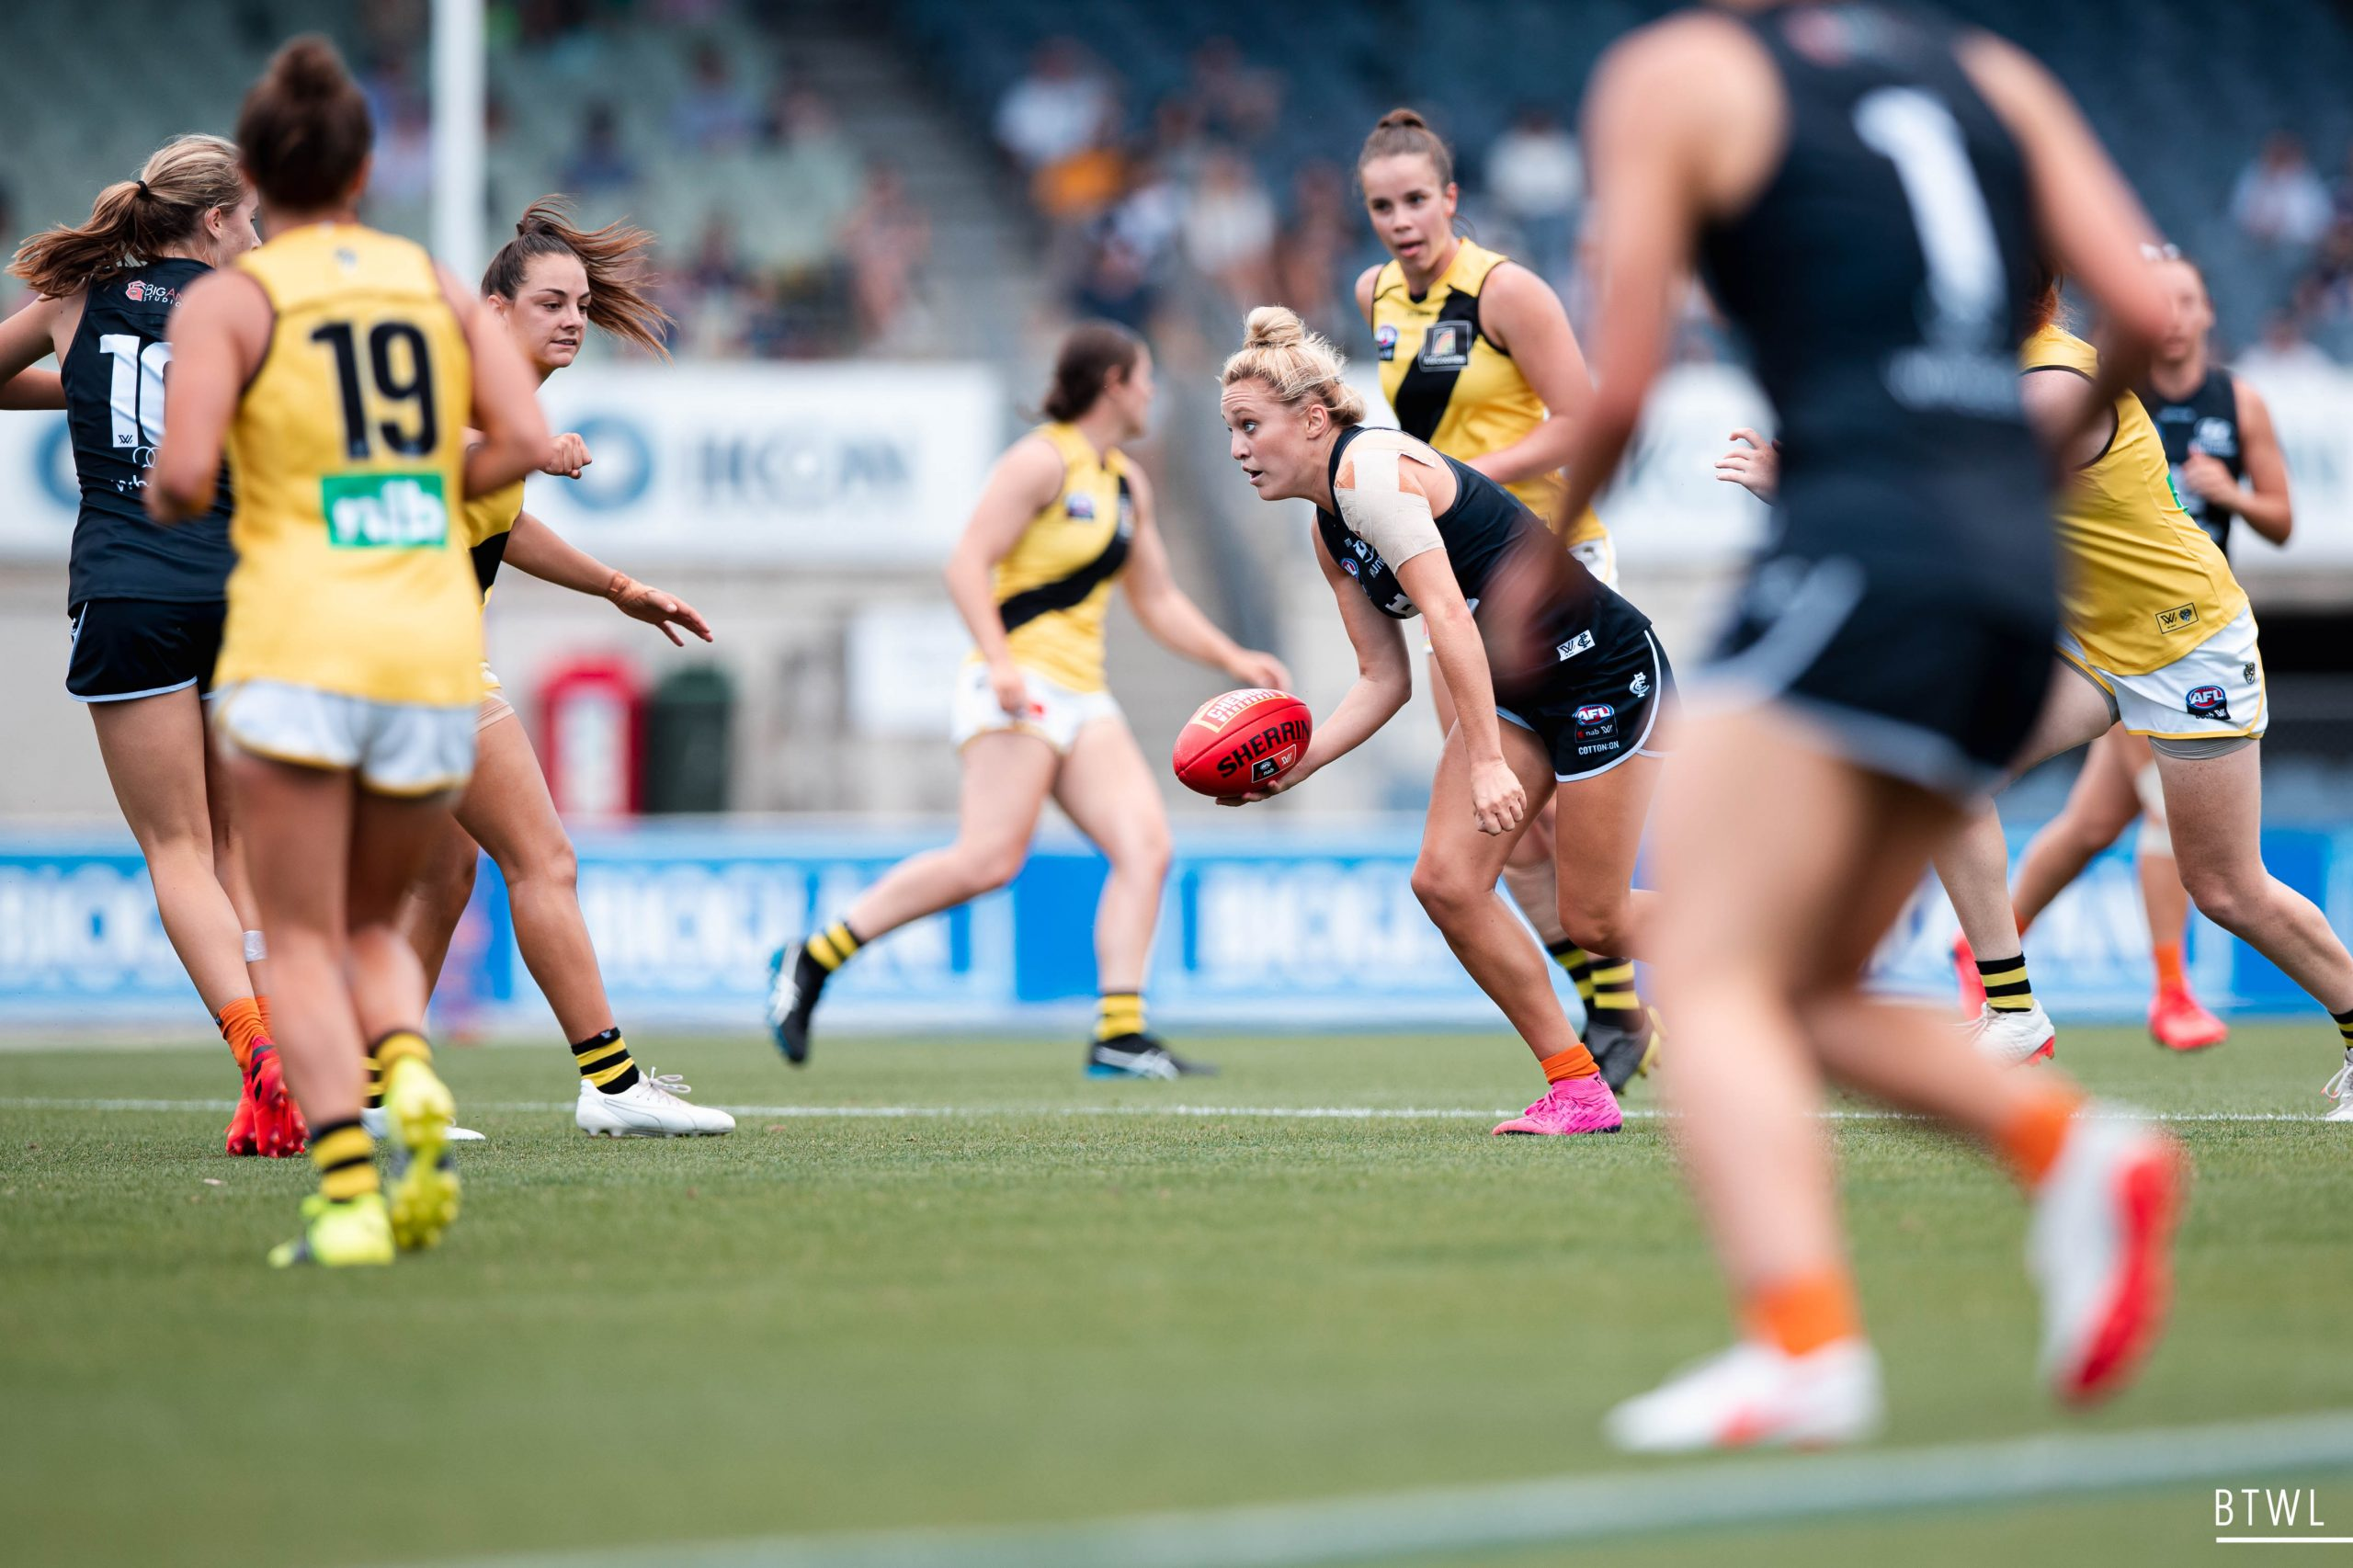 Jess Hosking has been reunited with her sister during the trade period. Image: Rachel Bach / By The White Line